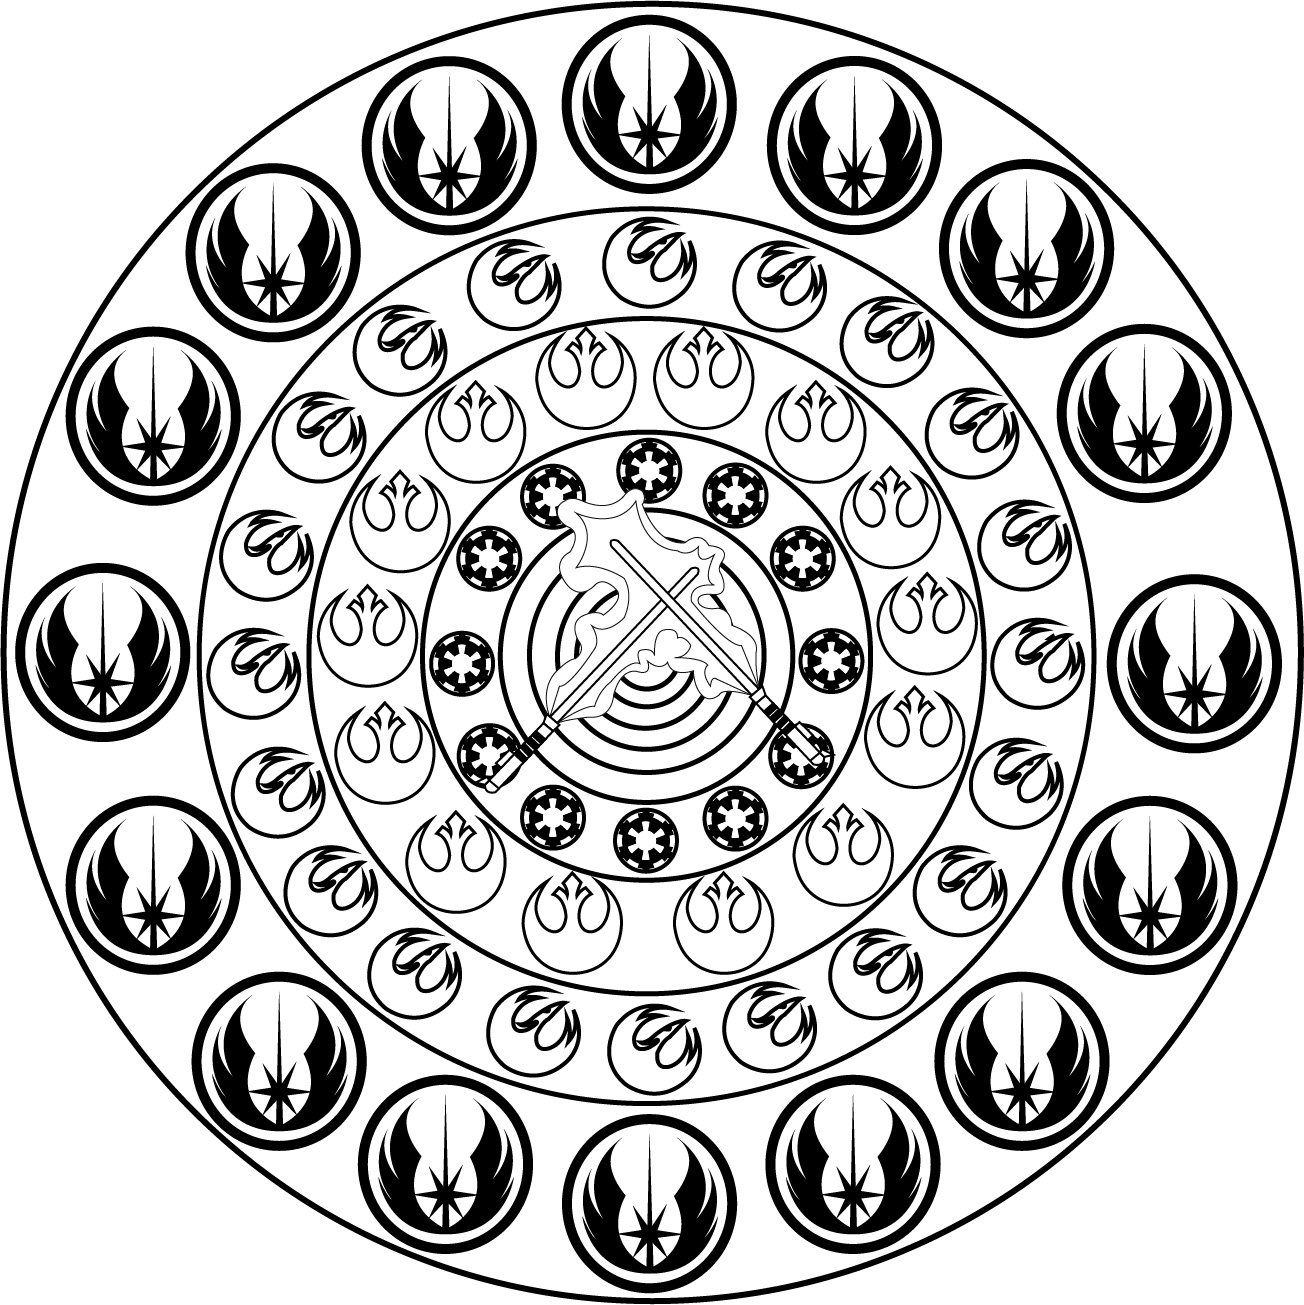 Mandala inspired by Star Wars ('The Alliance Starbird, also known as the Phoenix, was the insignia of the Alliance to Restore the Republic. It adorned the flight helmets of a number of Rebel pilots during the Galactic Civil War. It adopted the Marek family crest')